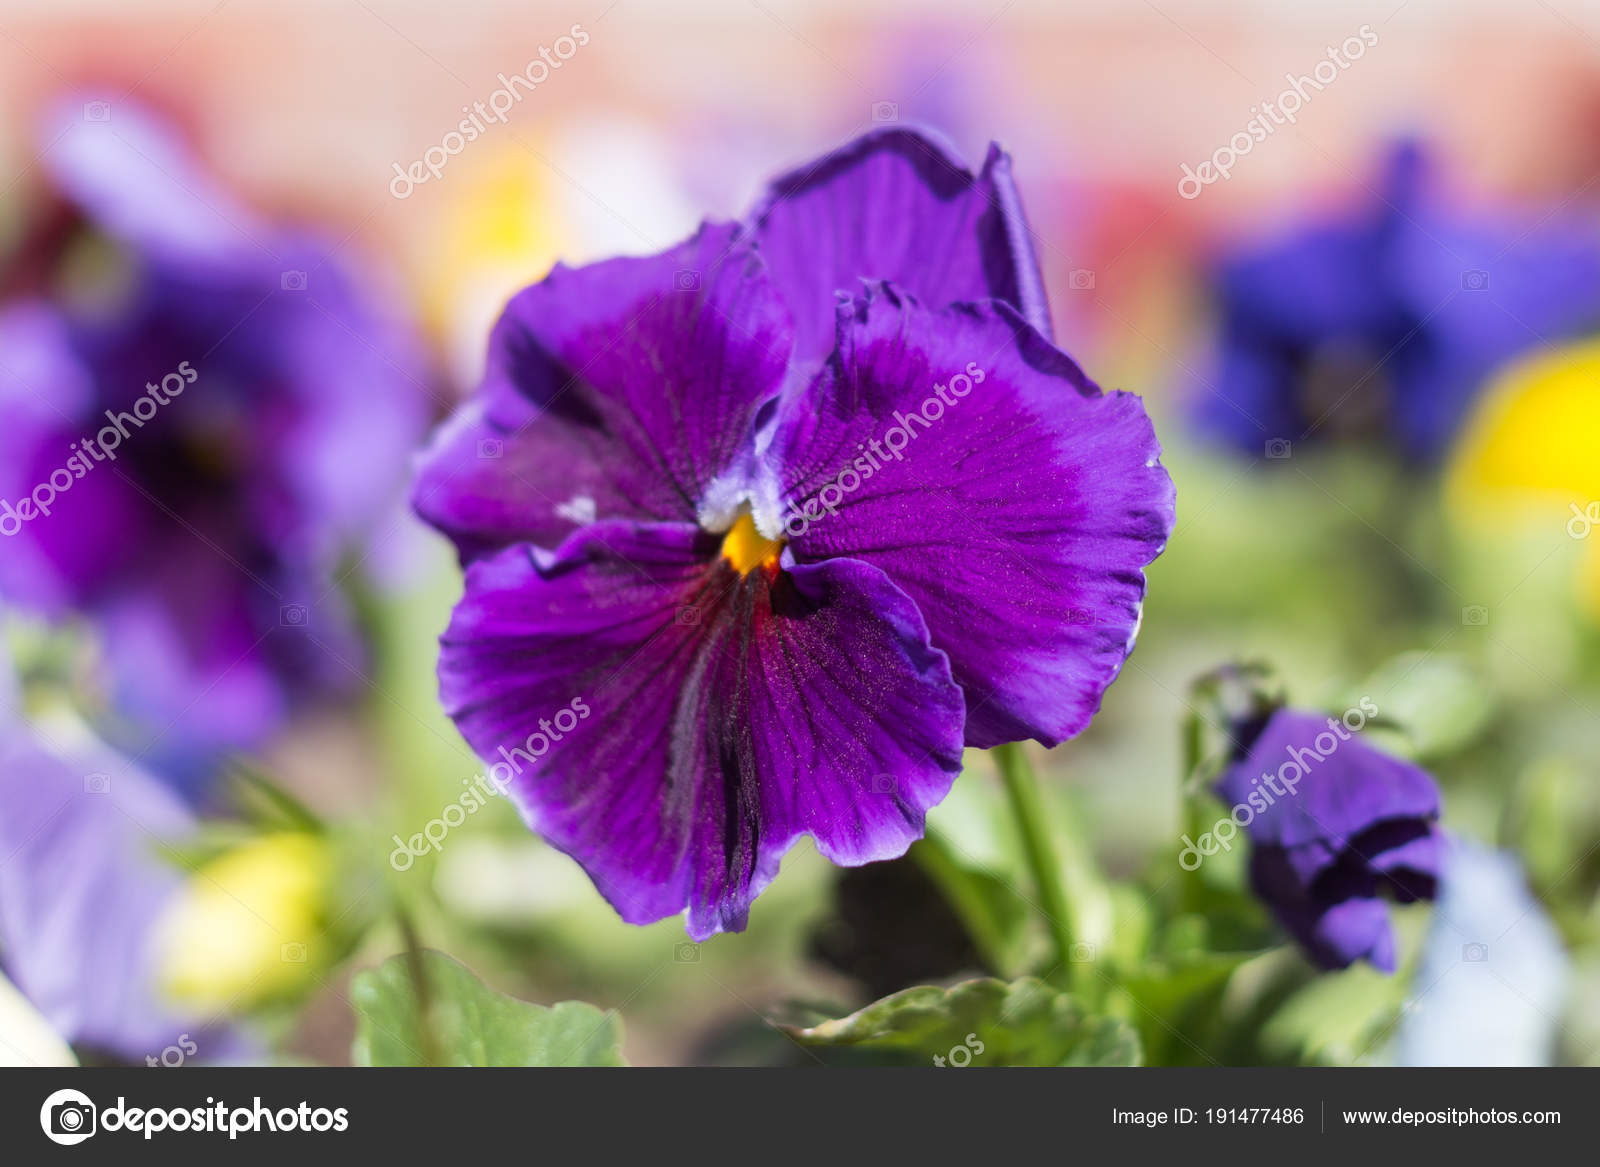 Pansy plant with blue flower stock photo amradul 191477486 pansy plant with blue flower stock photo izmirmasajfo